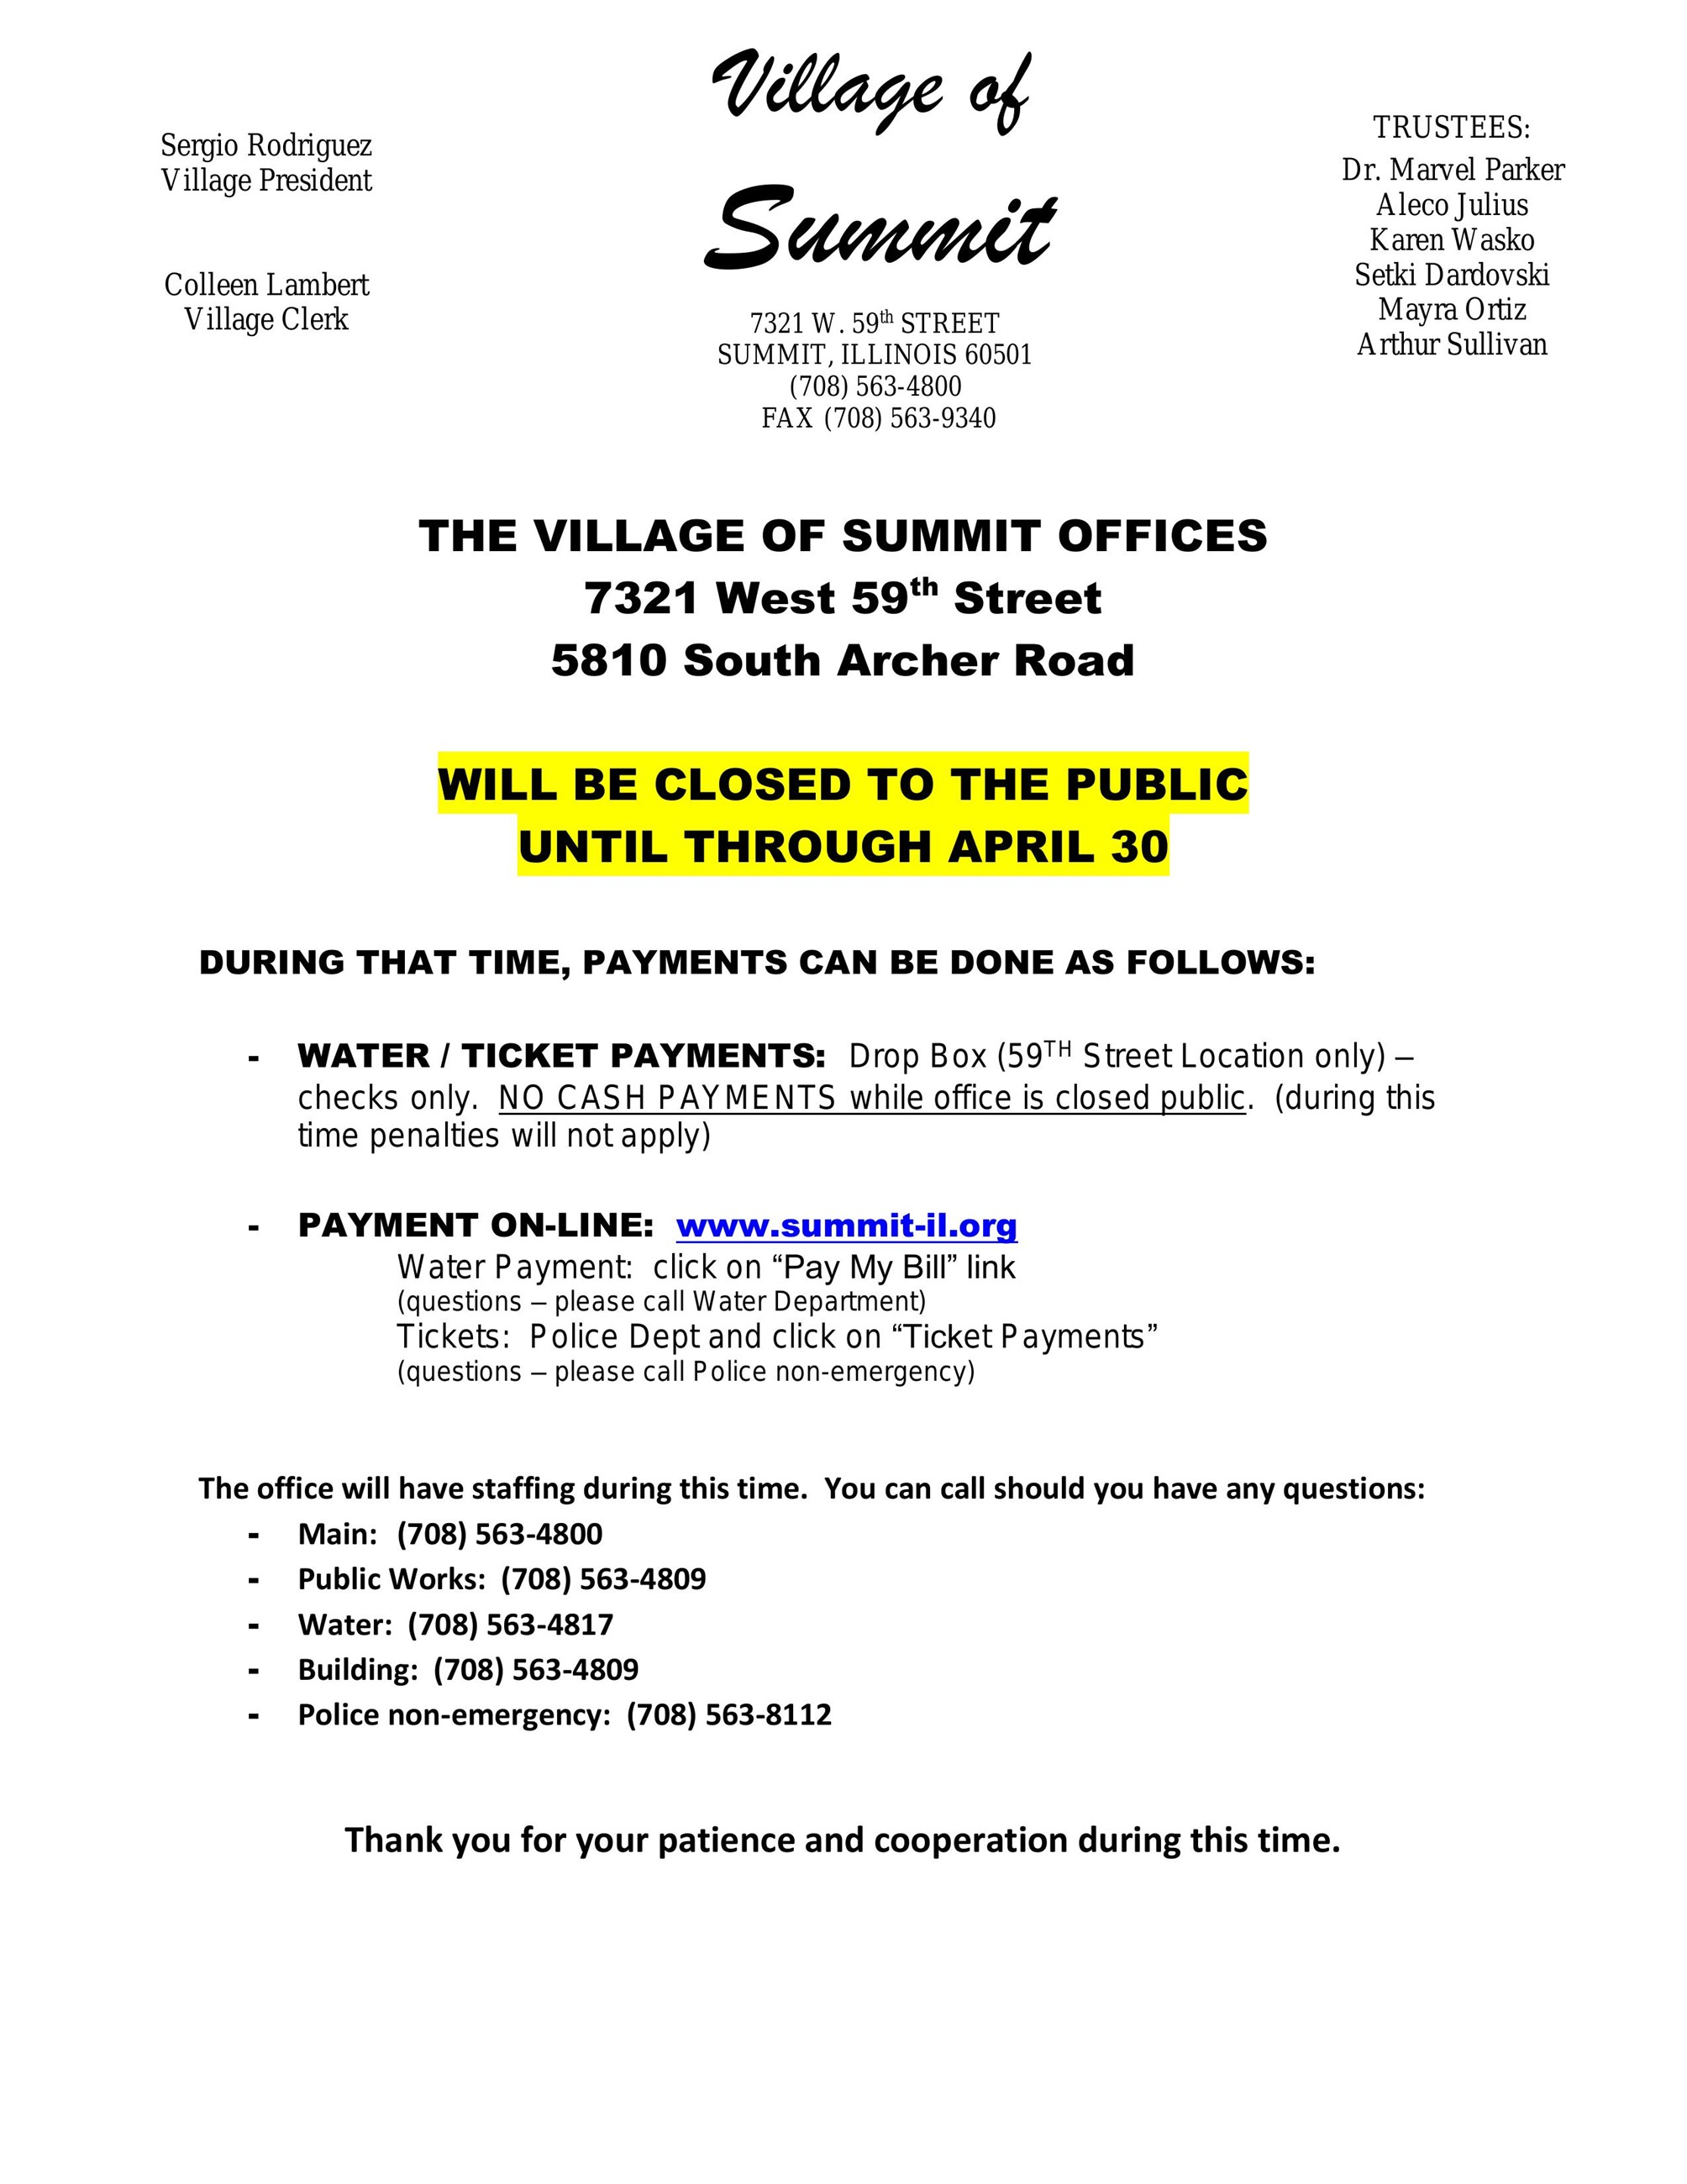 Village Office Closure Letter March 2020